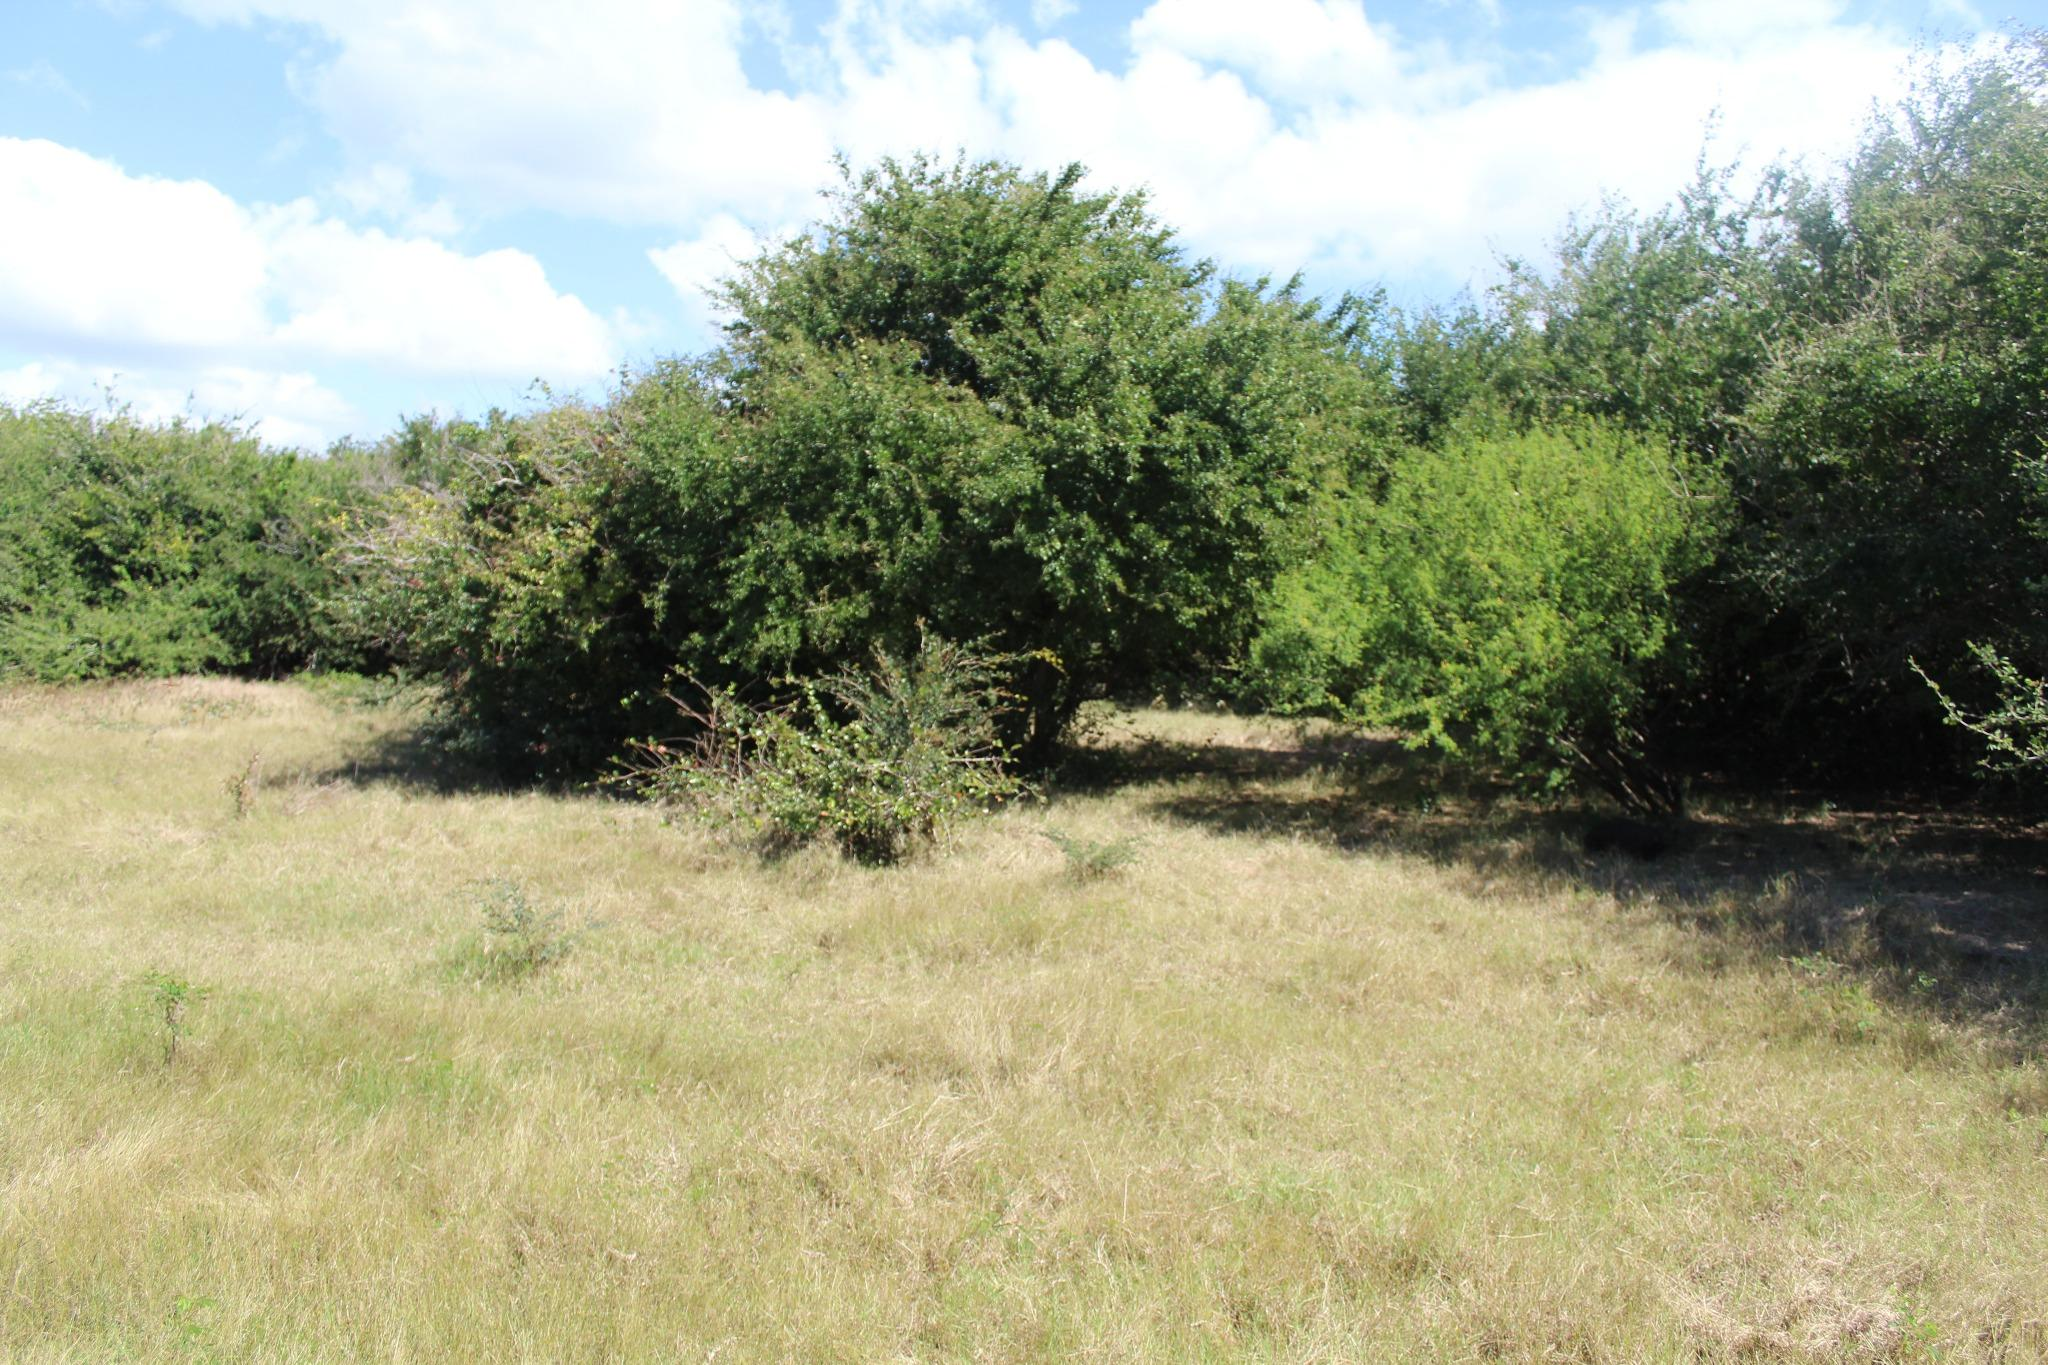 FOR SALE – Wonderful freehold land of 1 acre 33 near the beach of Bain Boeuf